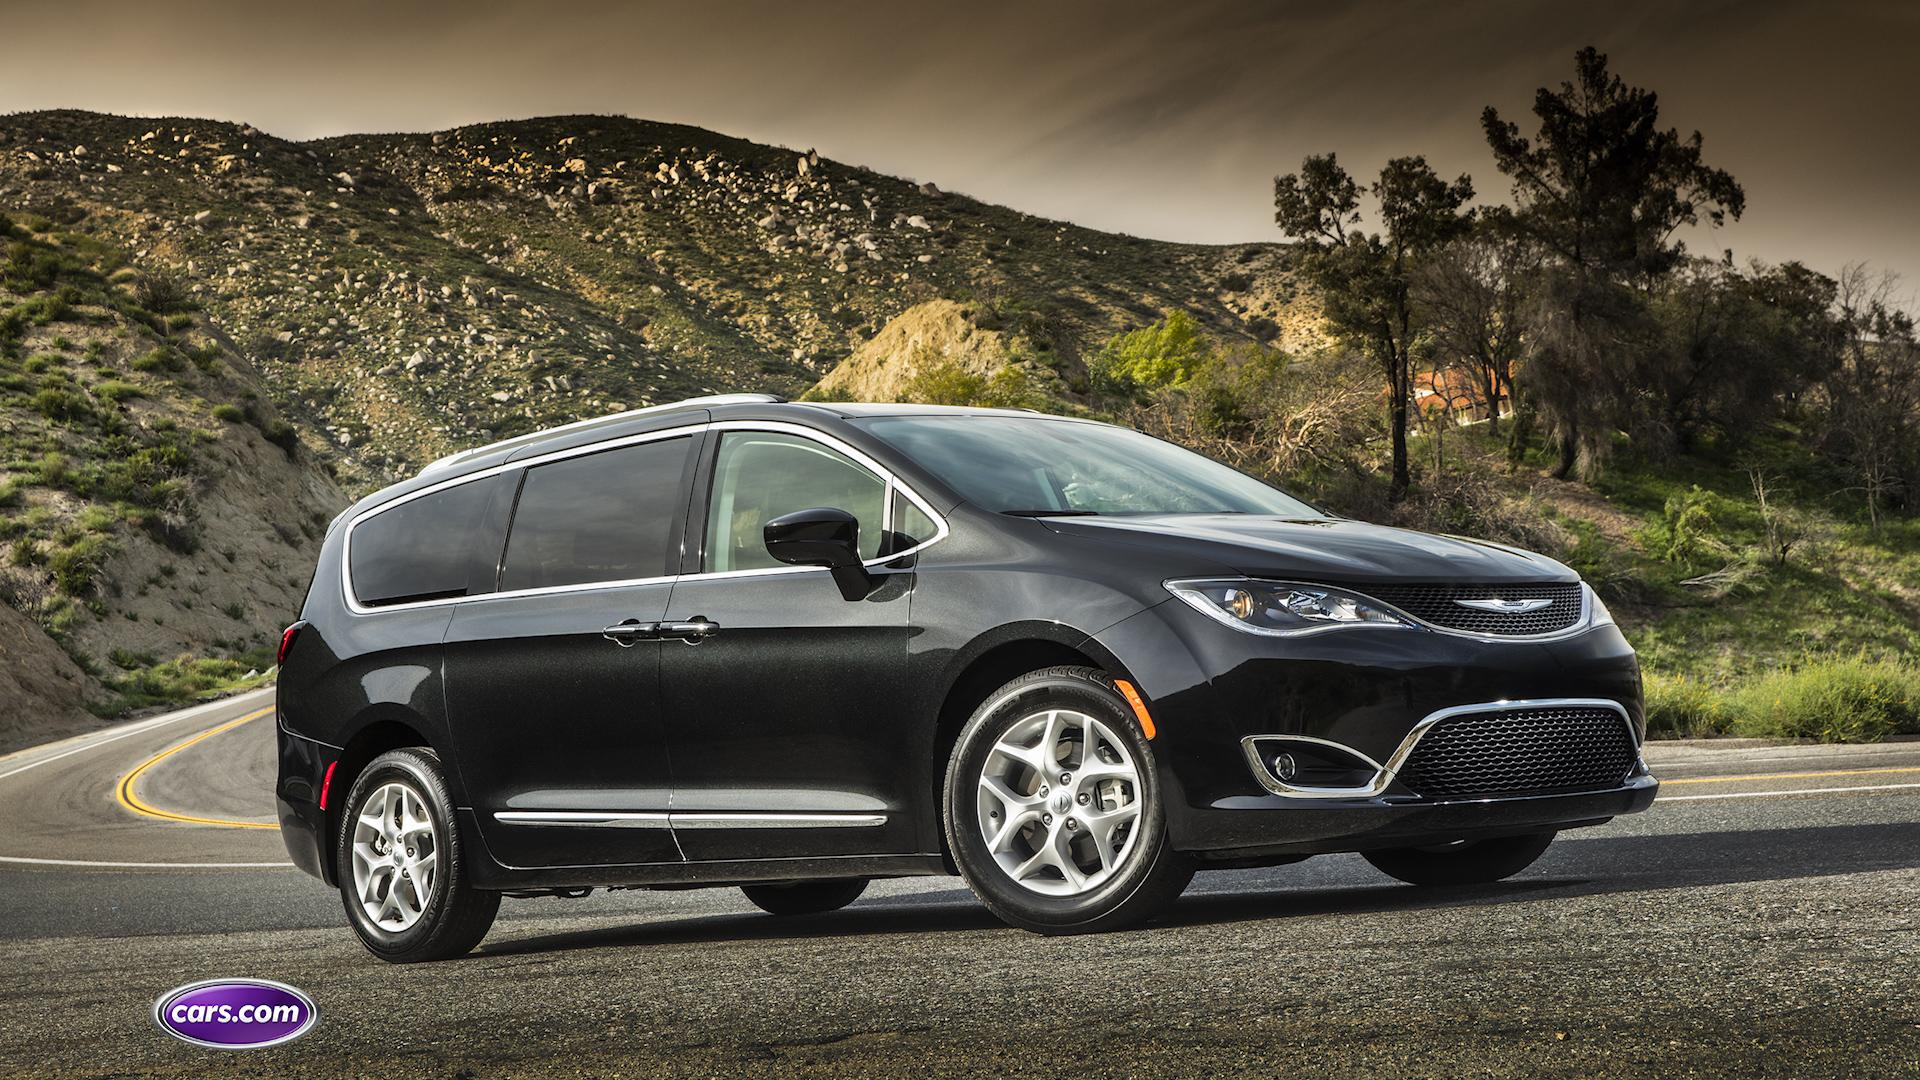 Video: 2017 Chrysler Pacifica: Hands-Free Sliding Doors